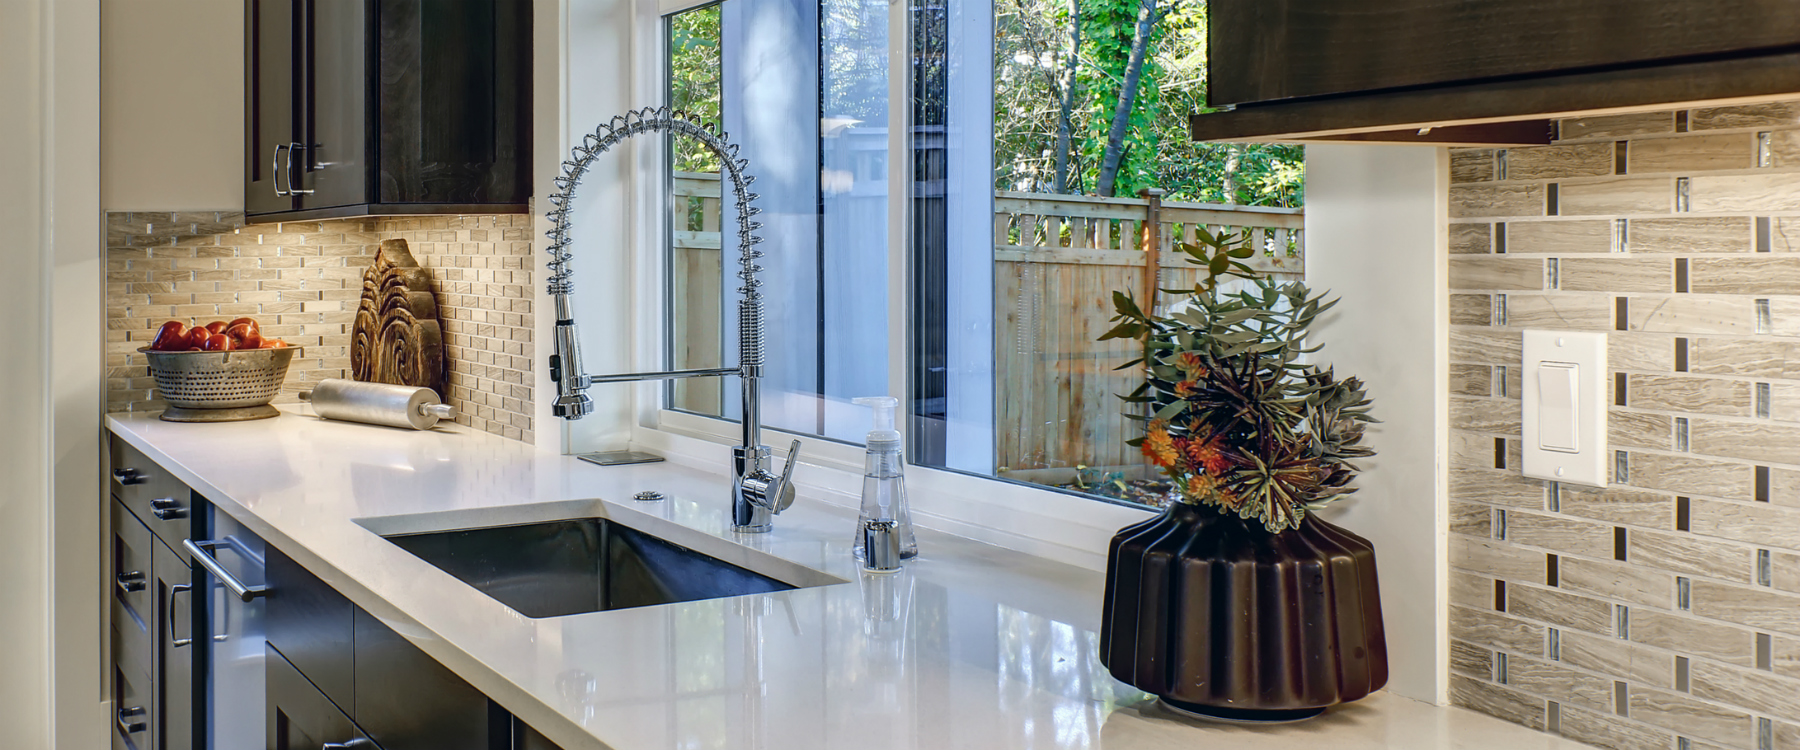 Contemporary kitchen with chrome faucet 1800x750